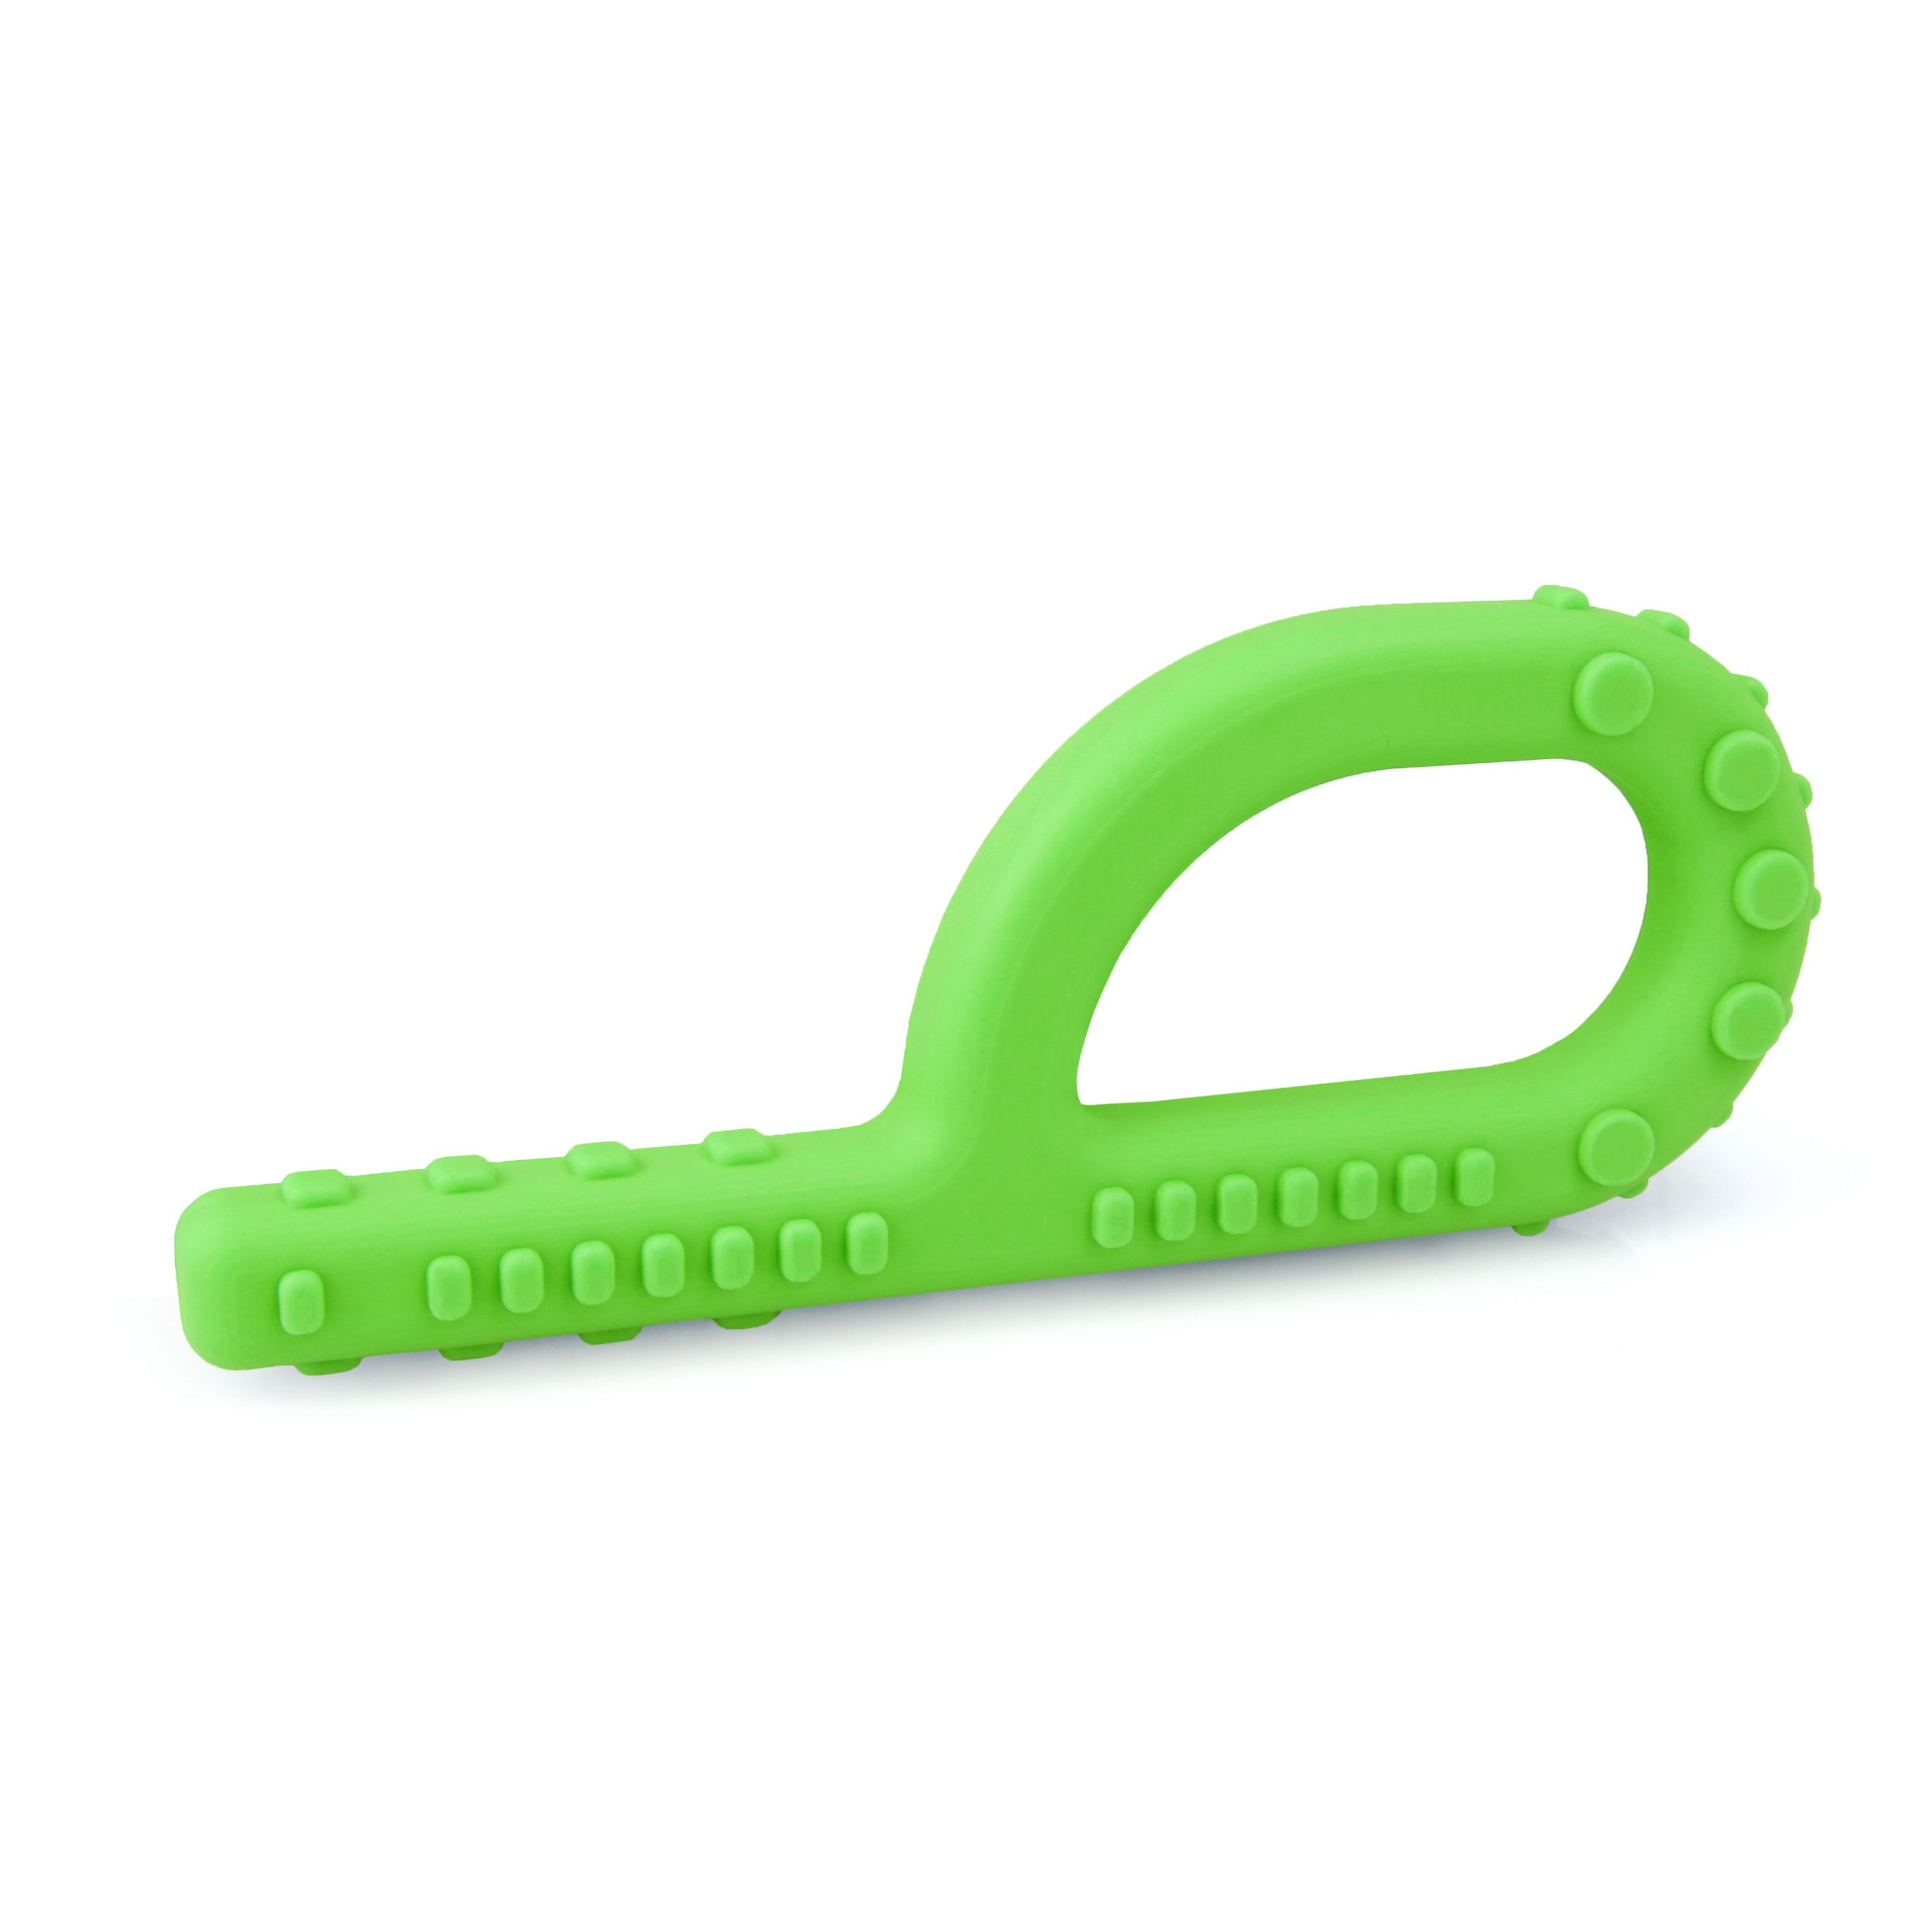 ARK's Textured Grabber XT - Extra Tough Sensory Oral Motor Chew Tool